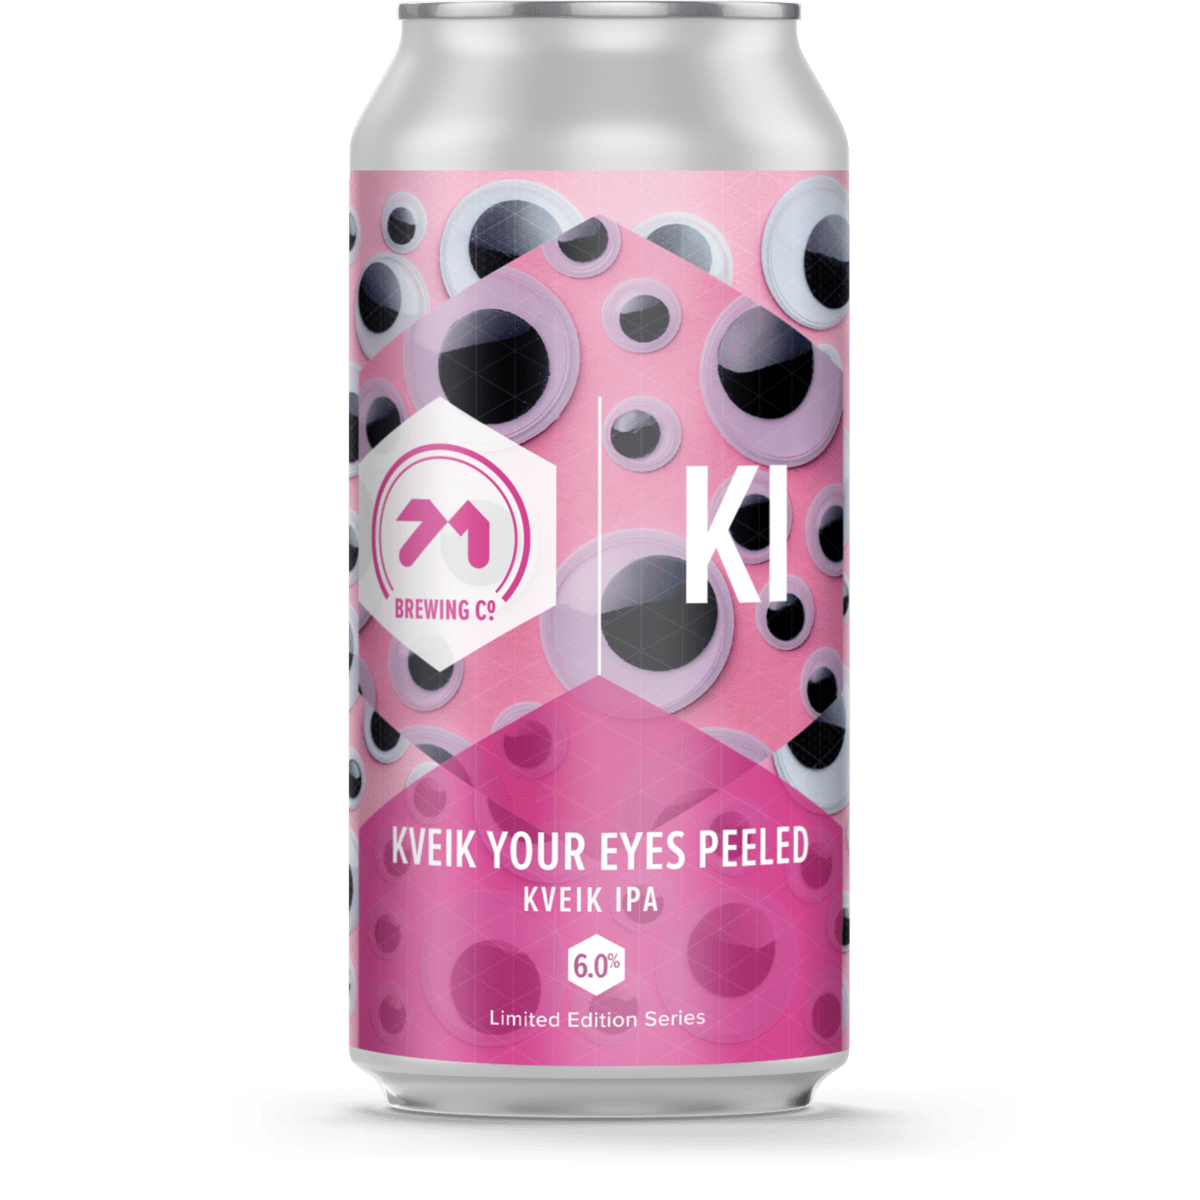 71 Brewing: Kviek Your Eyes Peeled